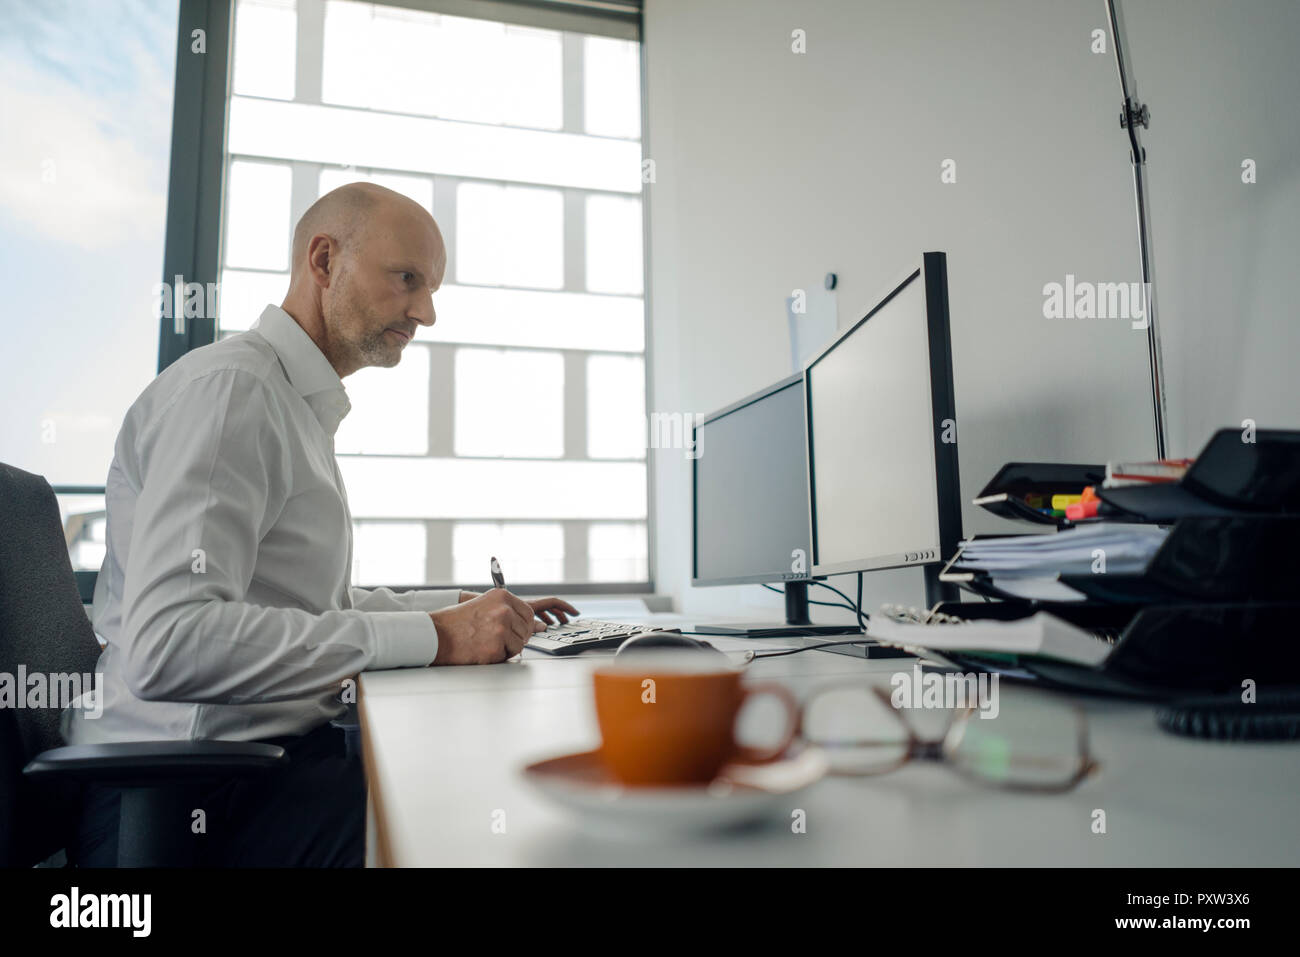 Businessman working on his computer, taking notes - Stock Image